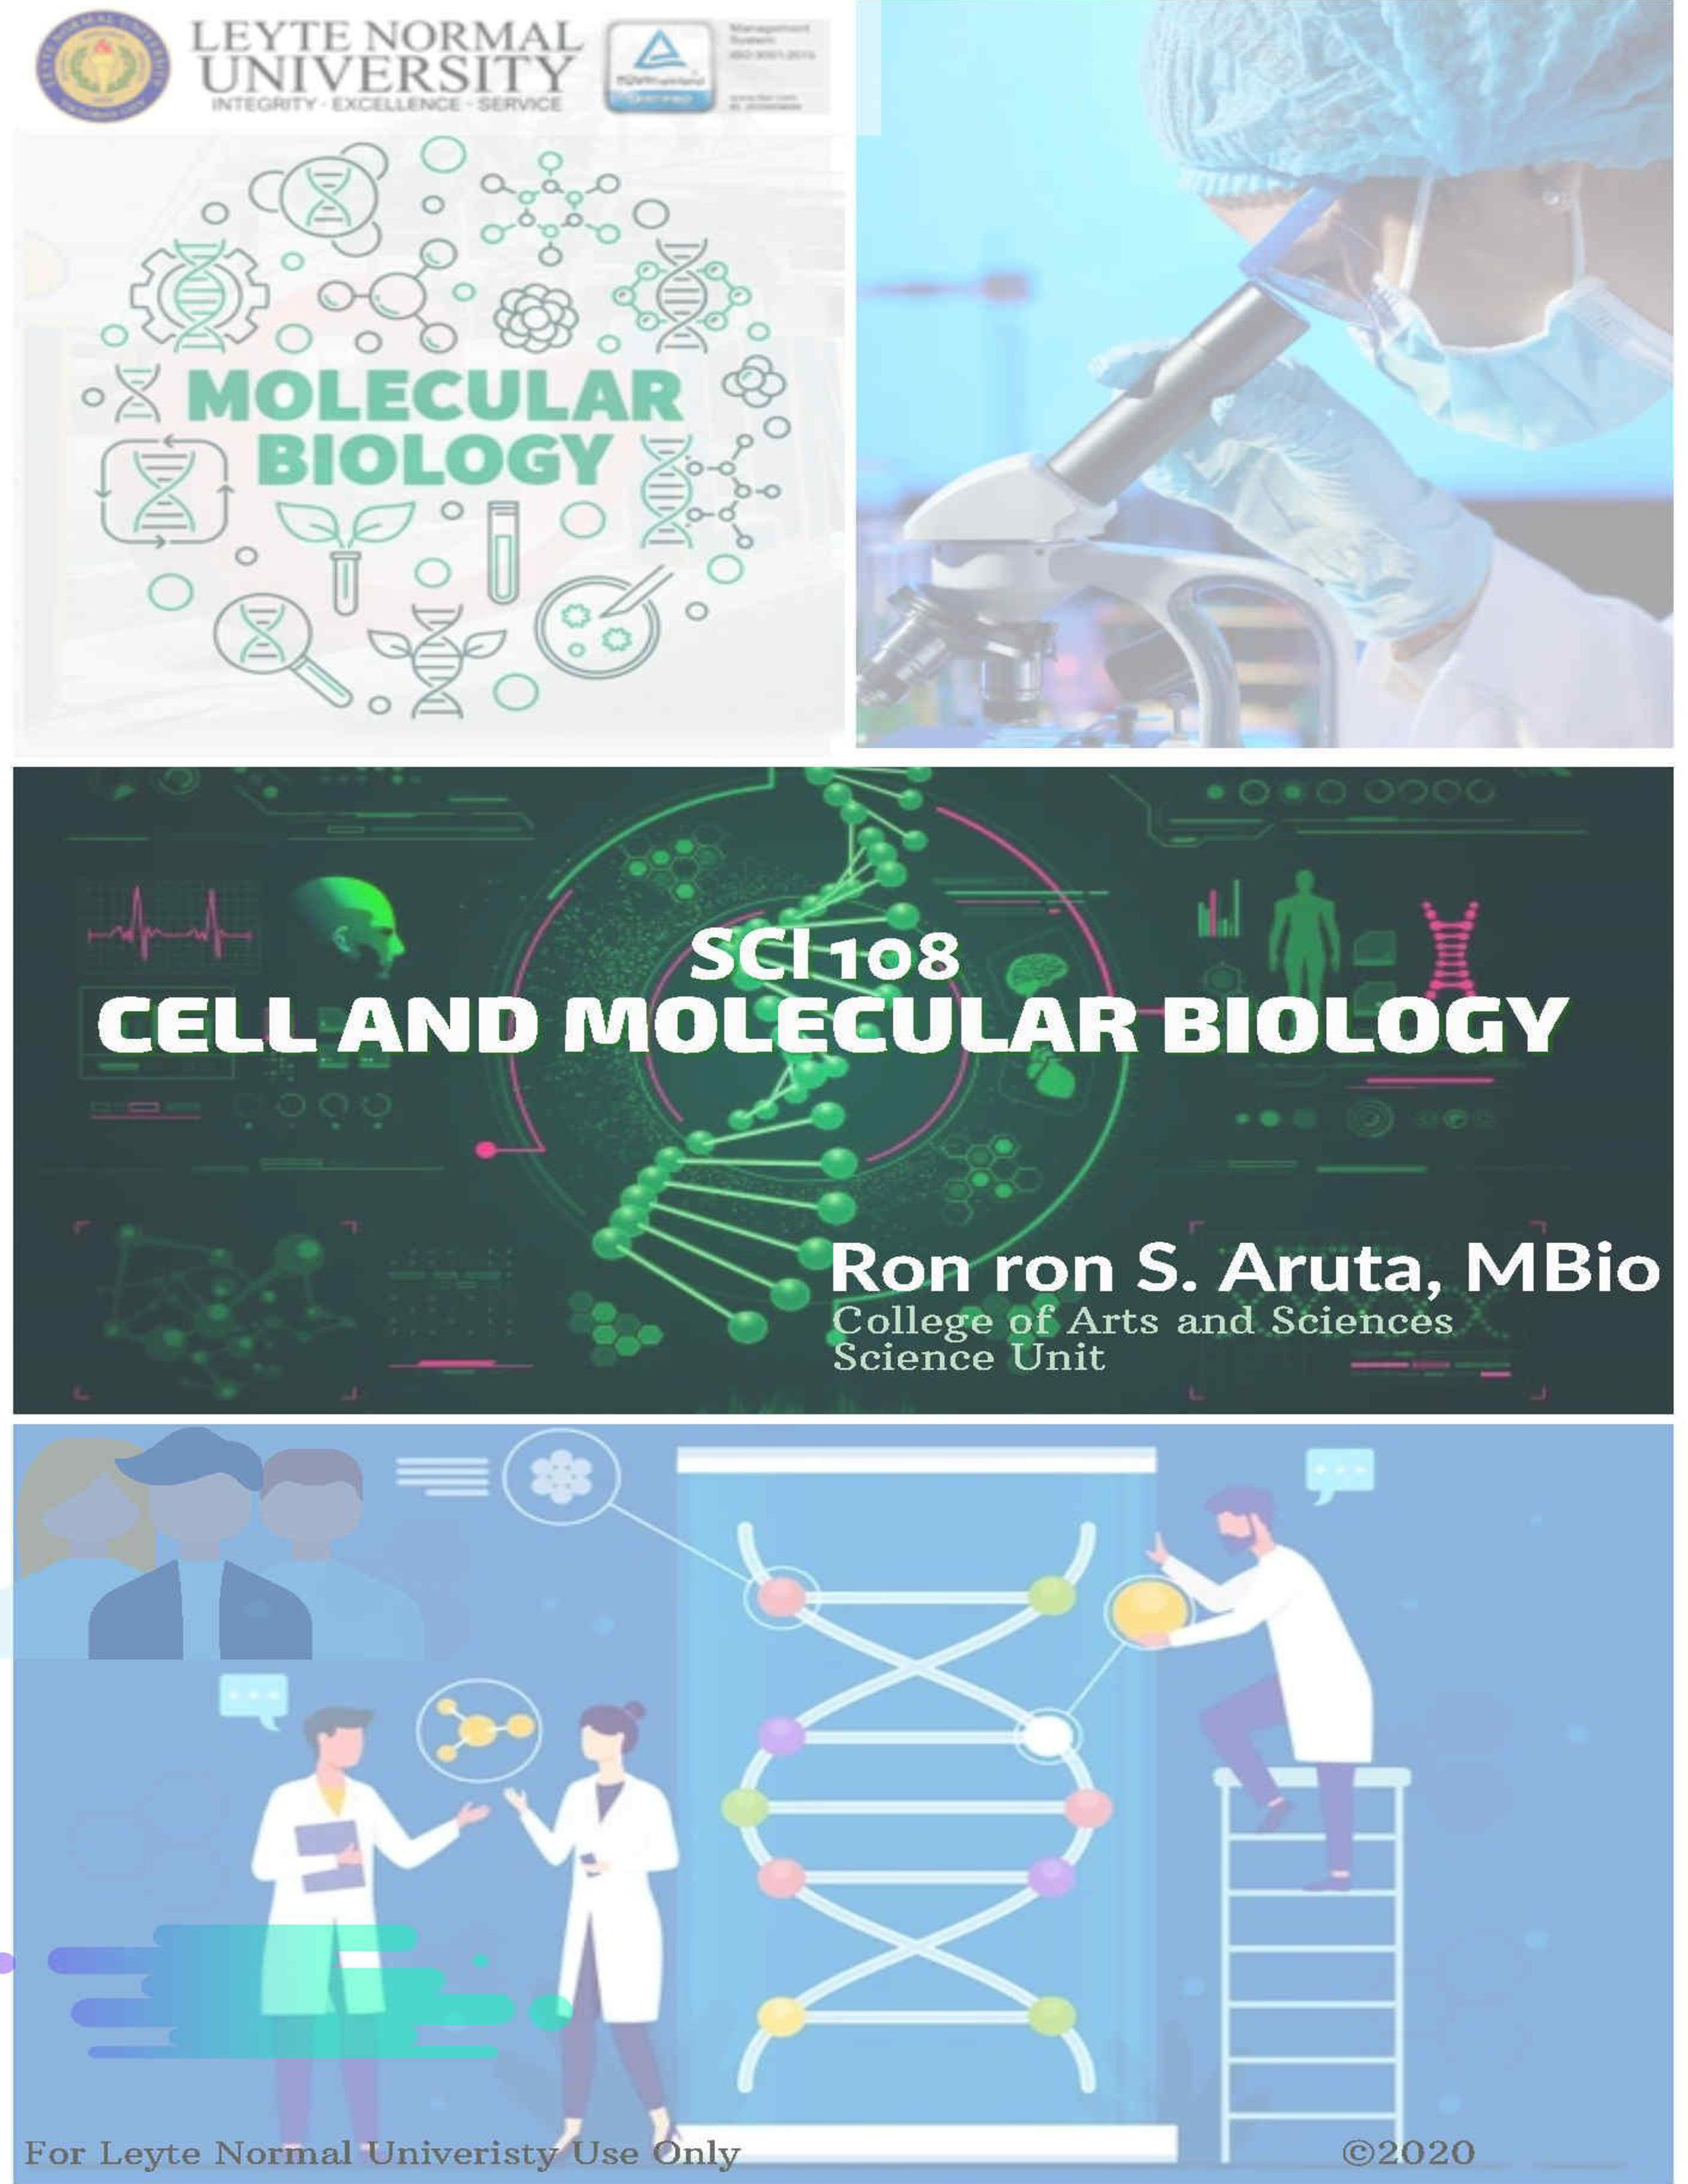 SCI 108 Cell and Molecular Biology